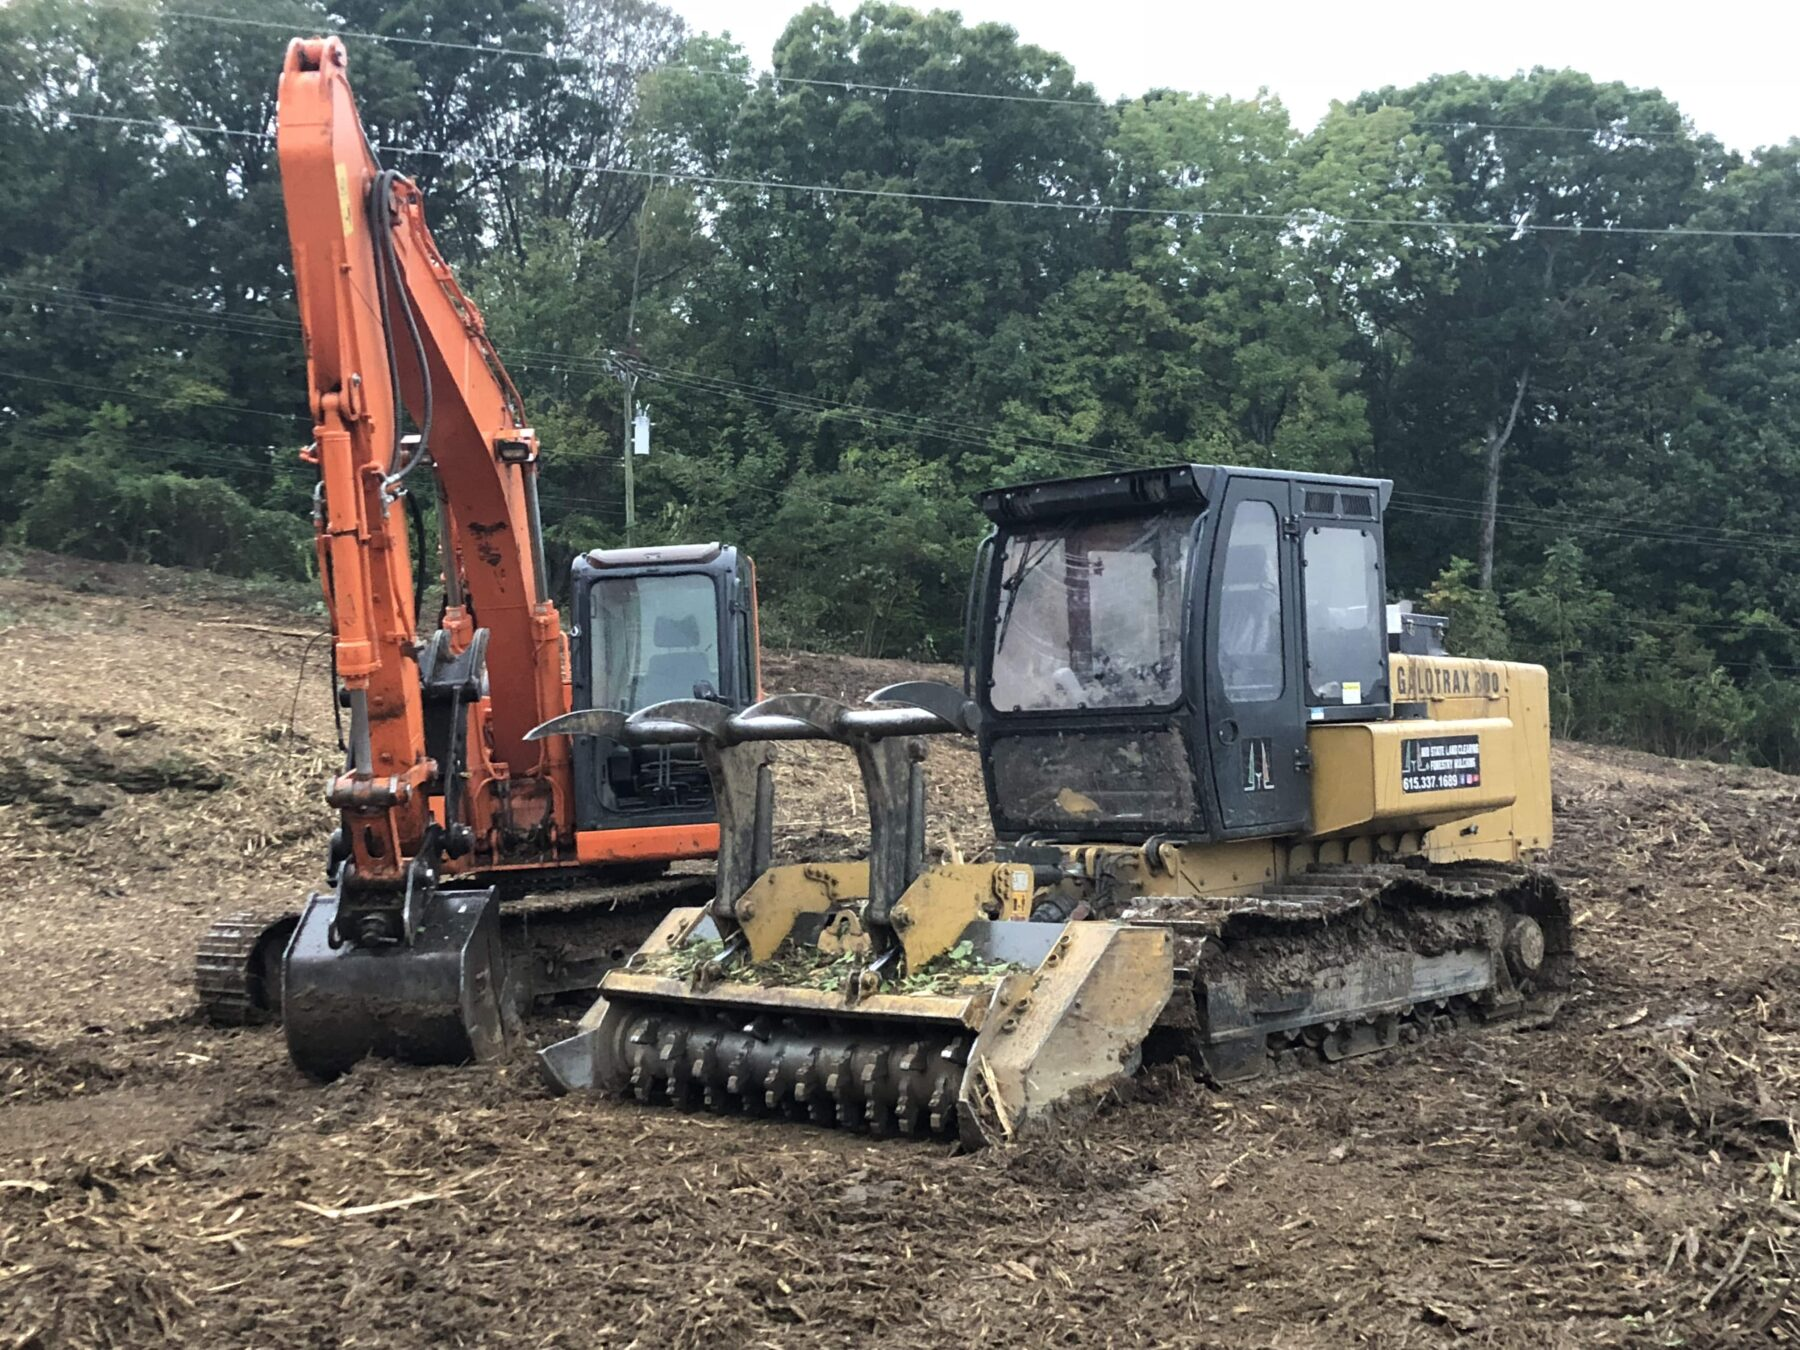 image of mulching machine and excavator for Midstate Land Clearing and Forestry Mulching LLC